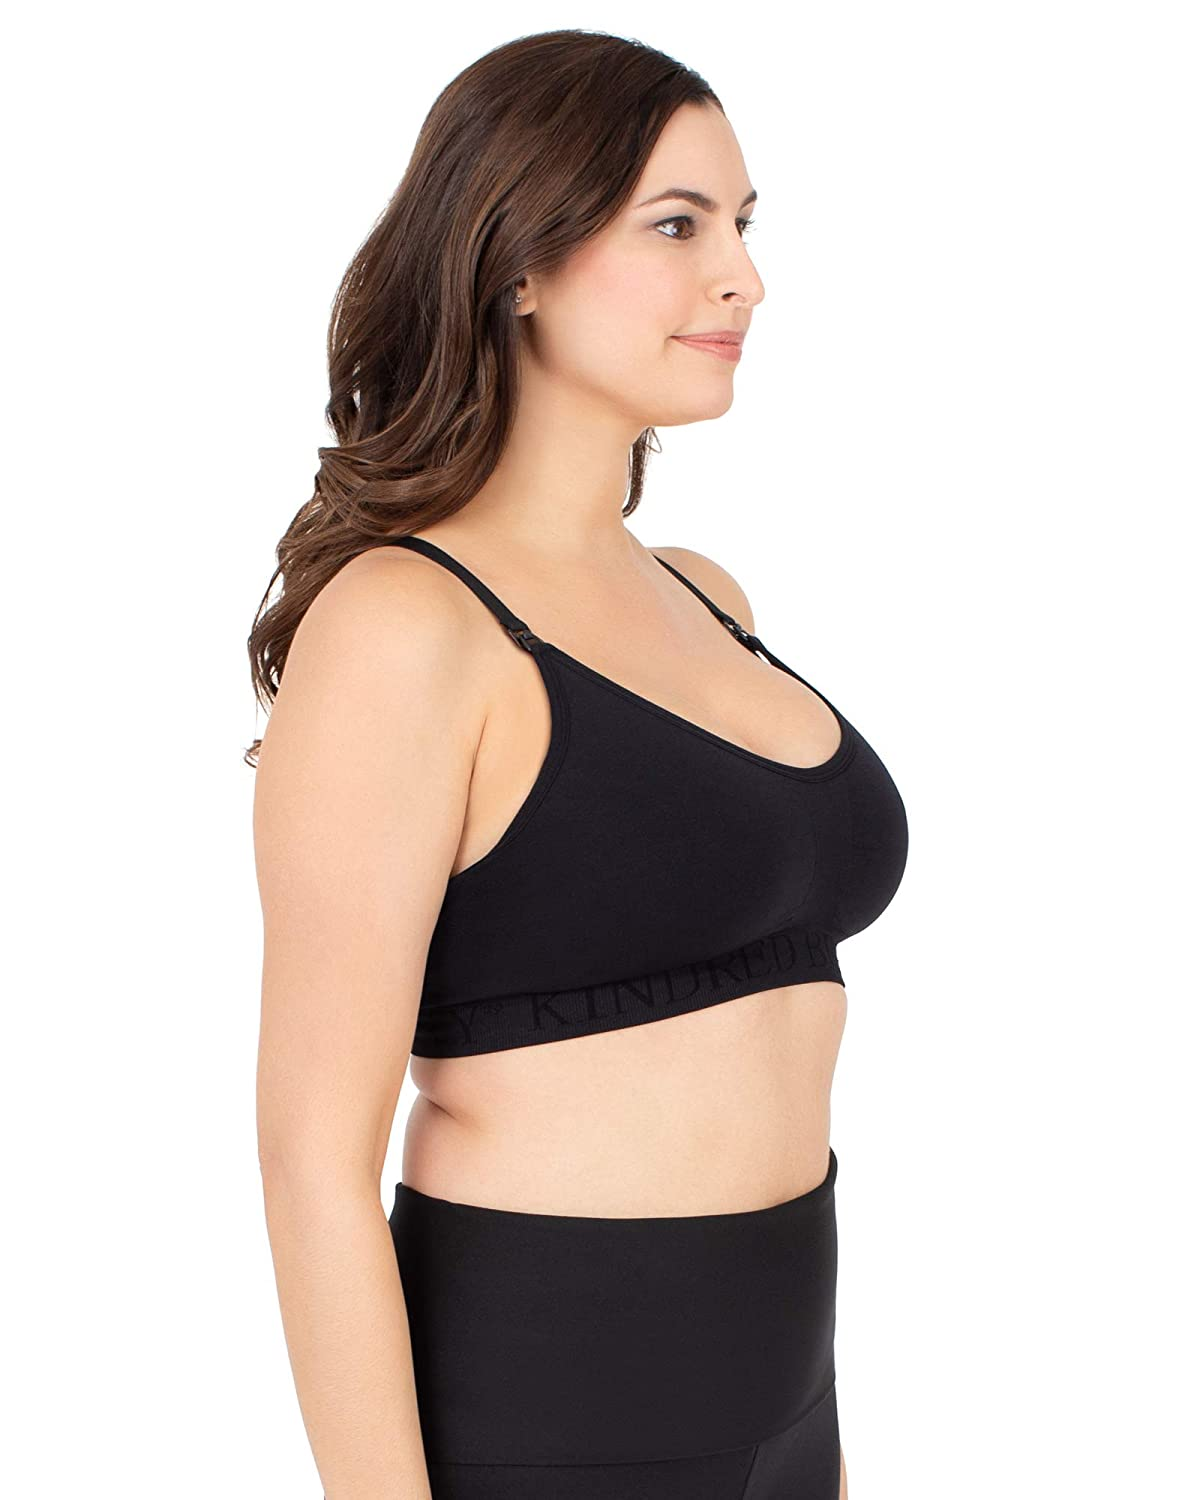 177bb4b19e6af Kindred Bravely Sublime Support Low Impact Nursing   Maternity Sports Bra  (Black